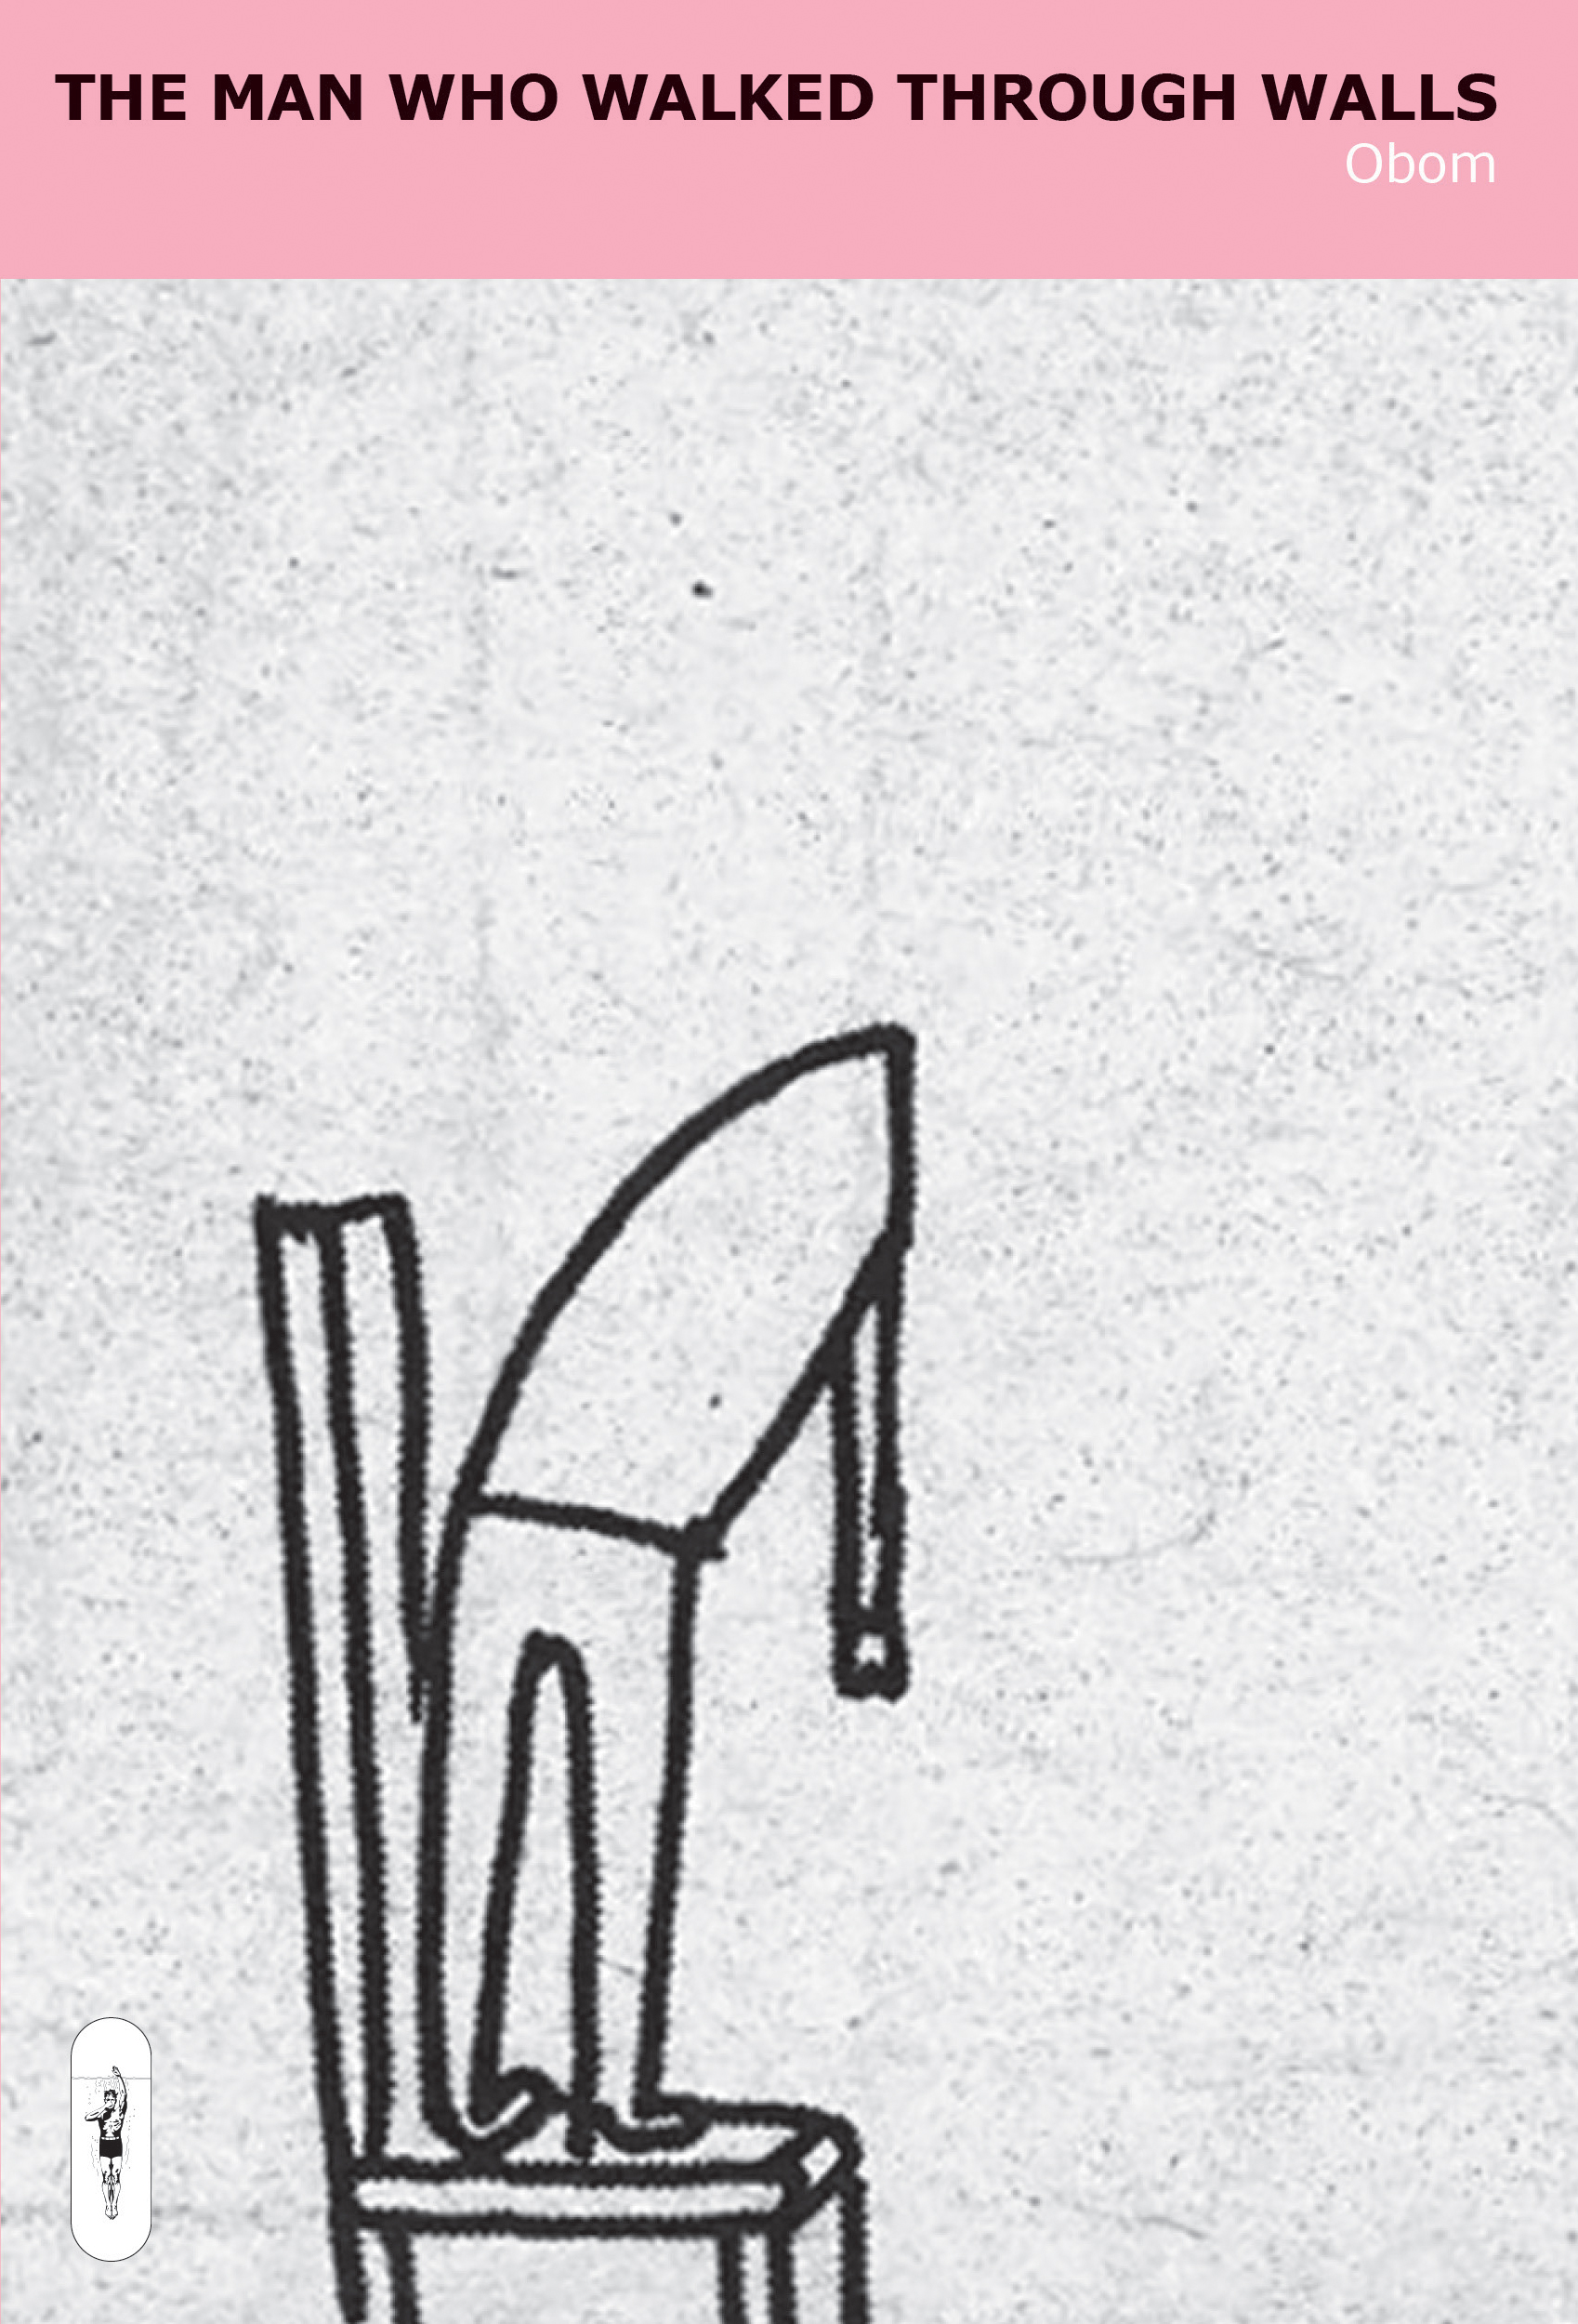 A cartoon person stands on a chair, leaning forward slightly. They have no head. Text: The Man Who Walked Through Walls by Obom